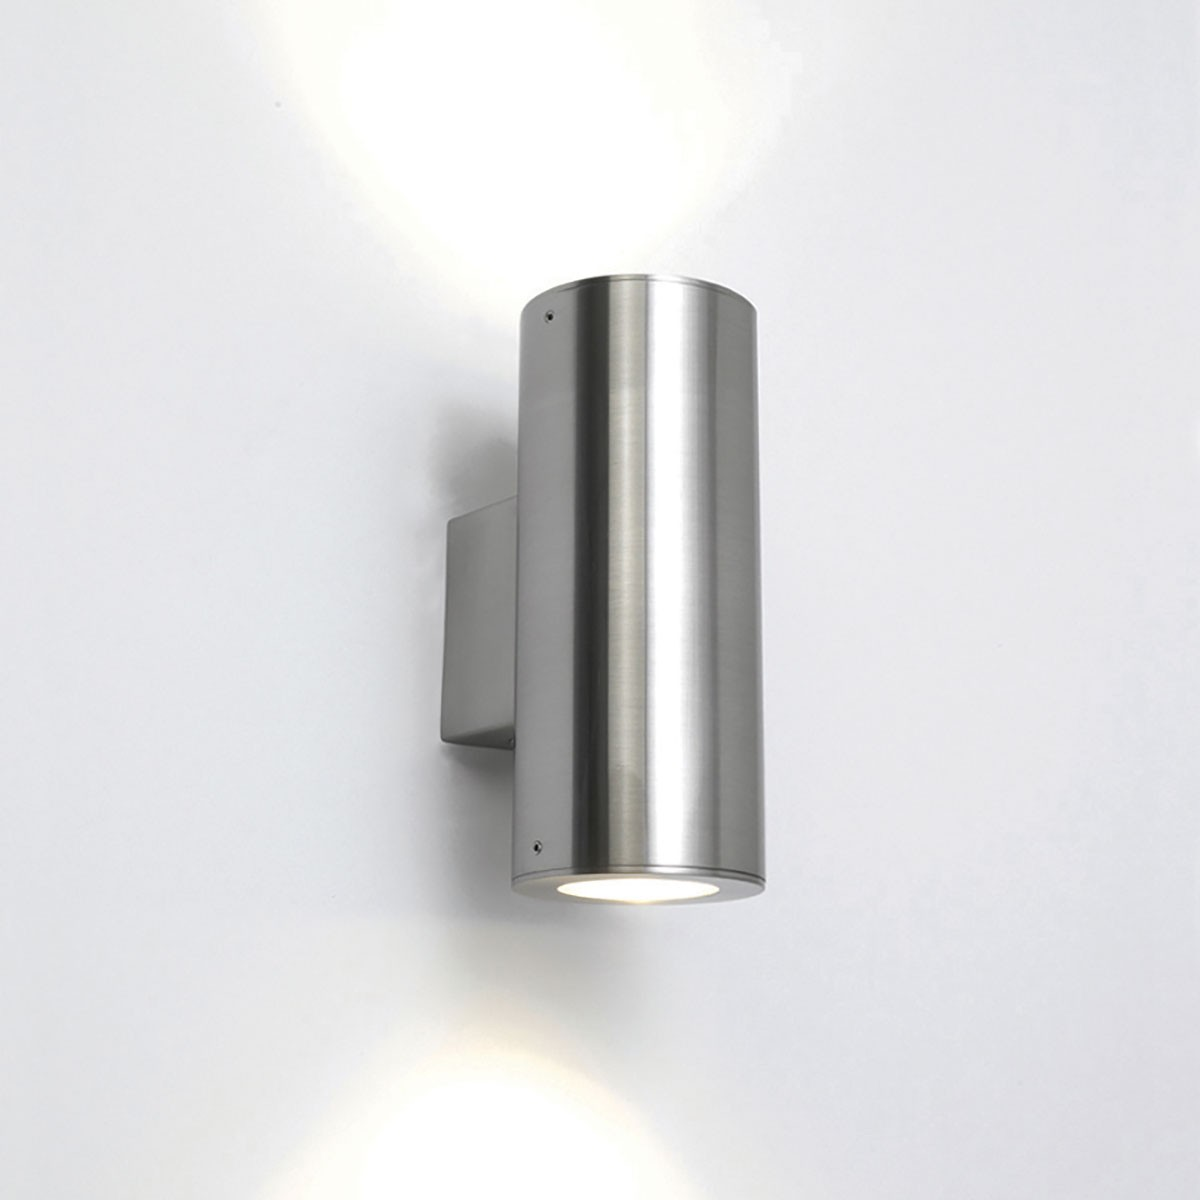 Astro detroit twin brushed stainless steel outdoor wall light at uk astro detroit twin brushed stainless steel outdoor wall light aloadofball Image collections